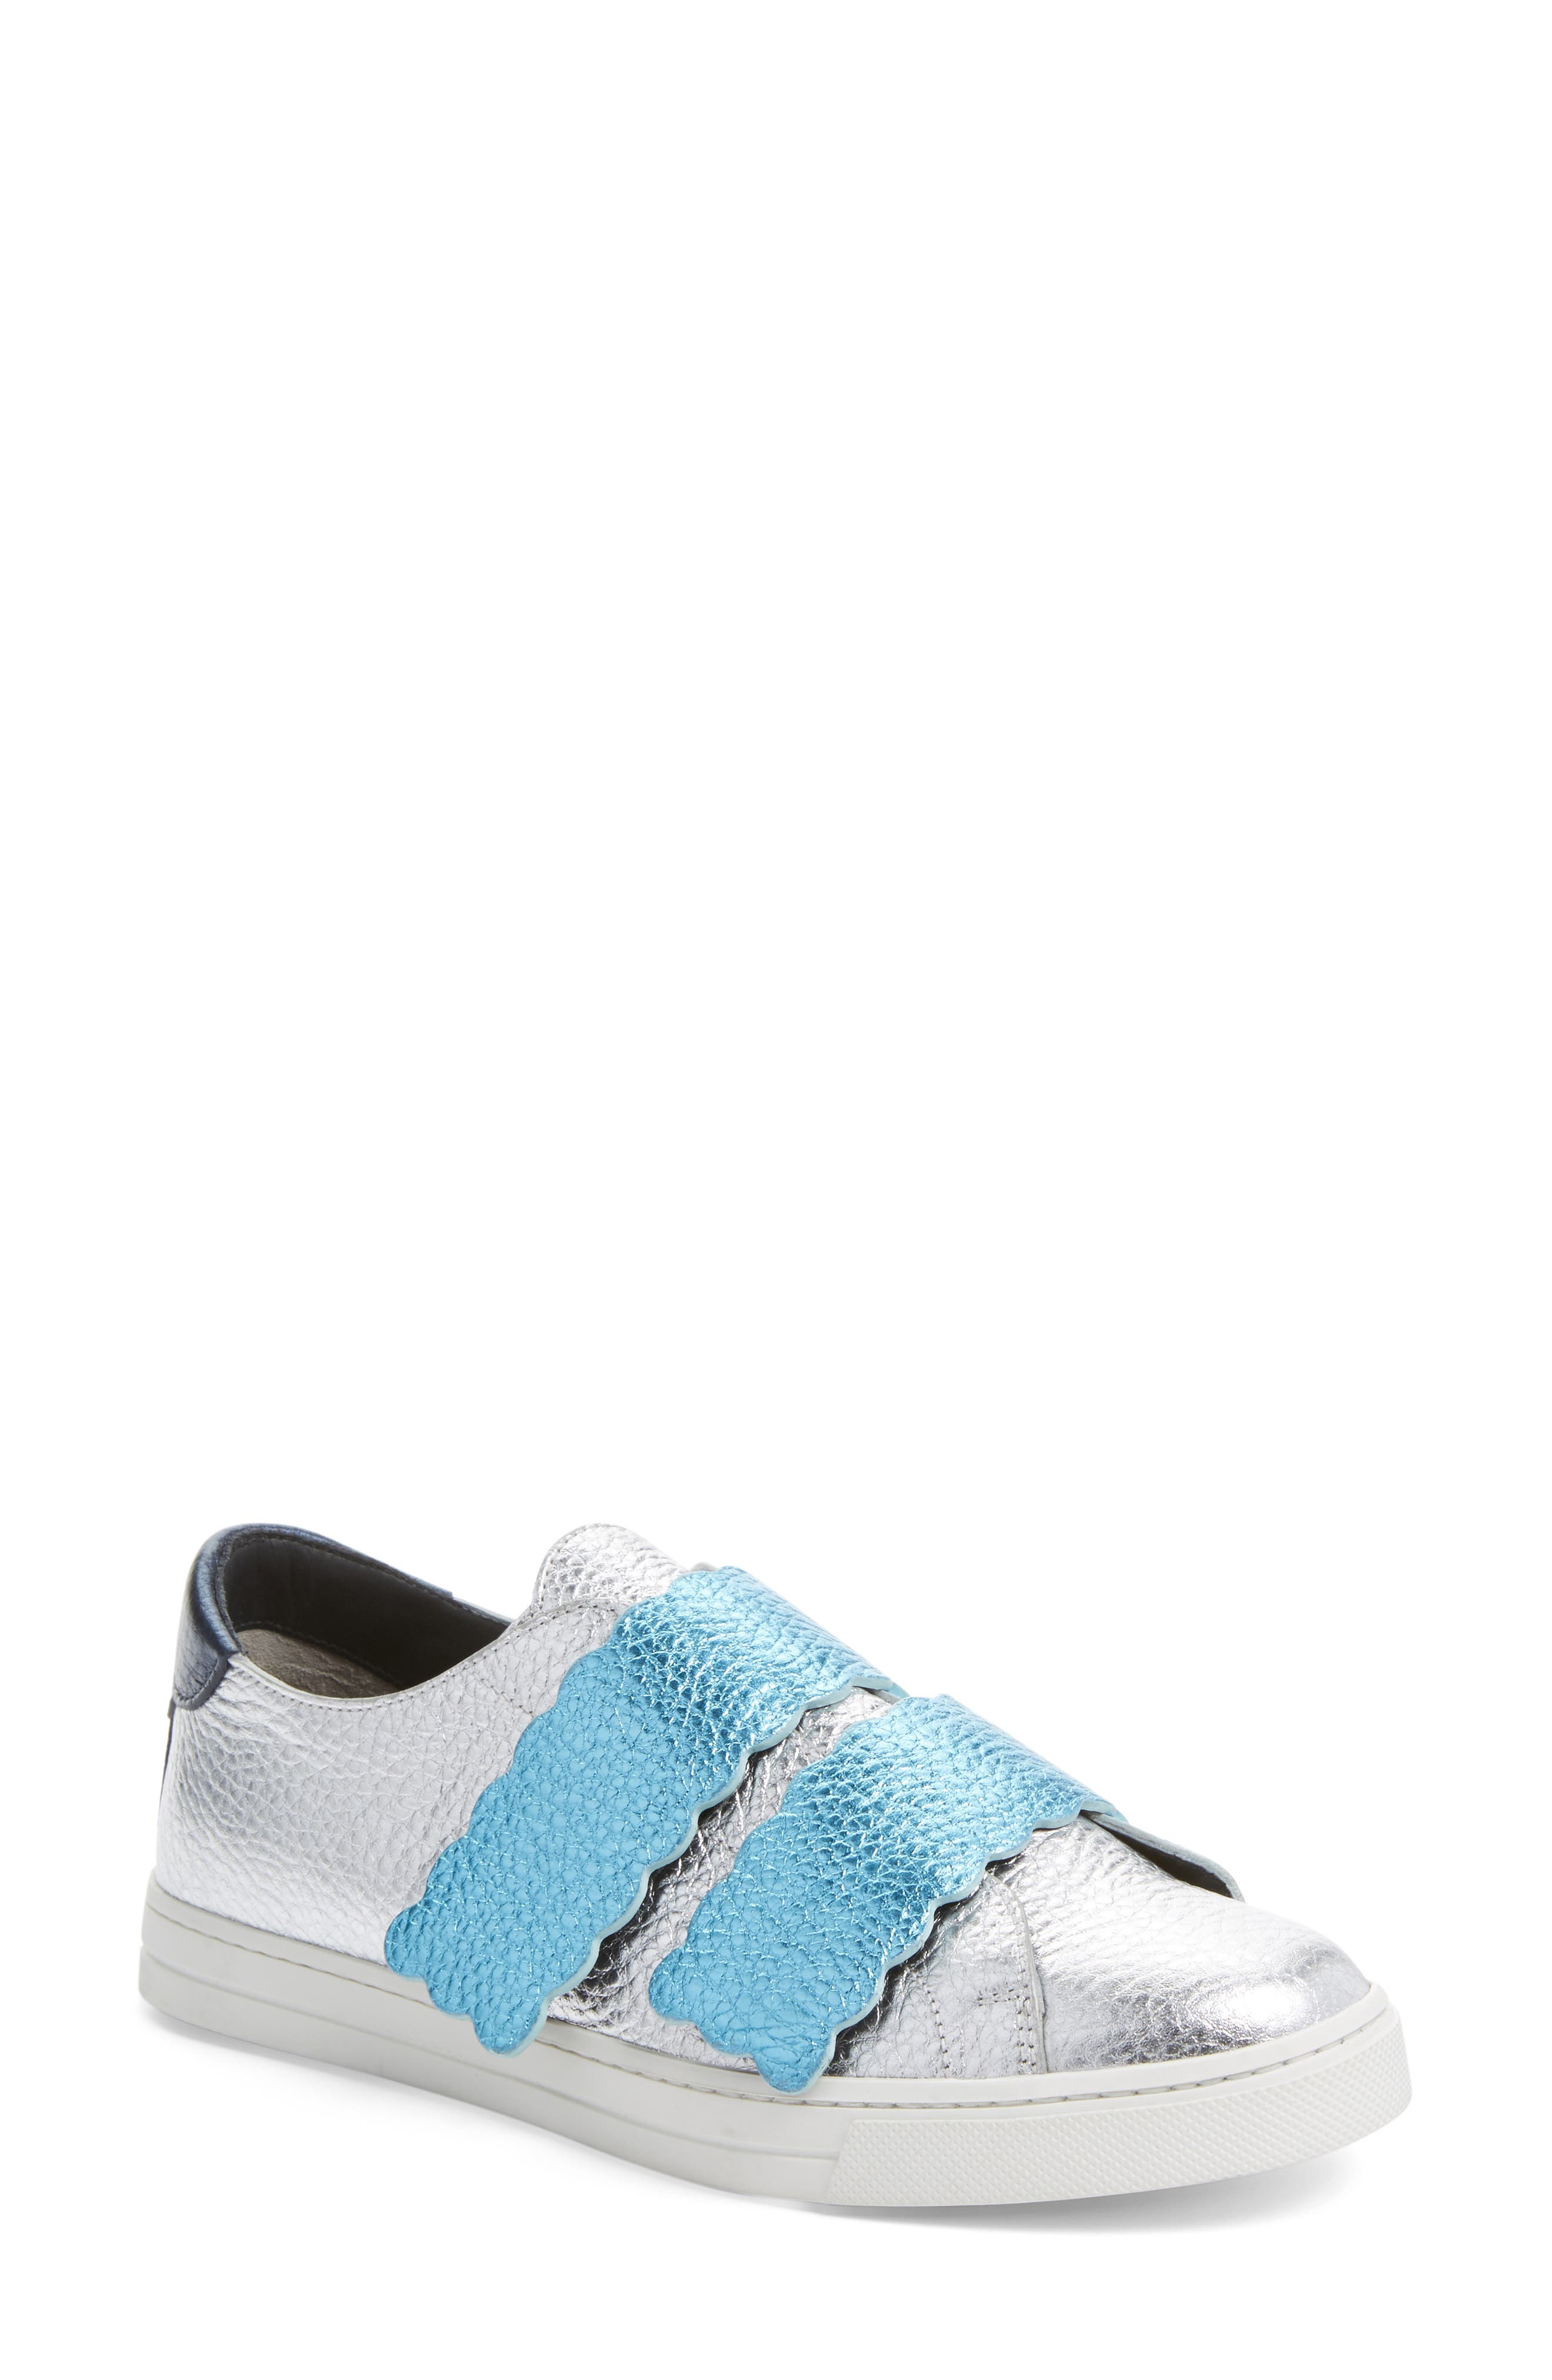 Fendi Scallop Sneaker (Women)